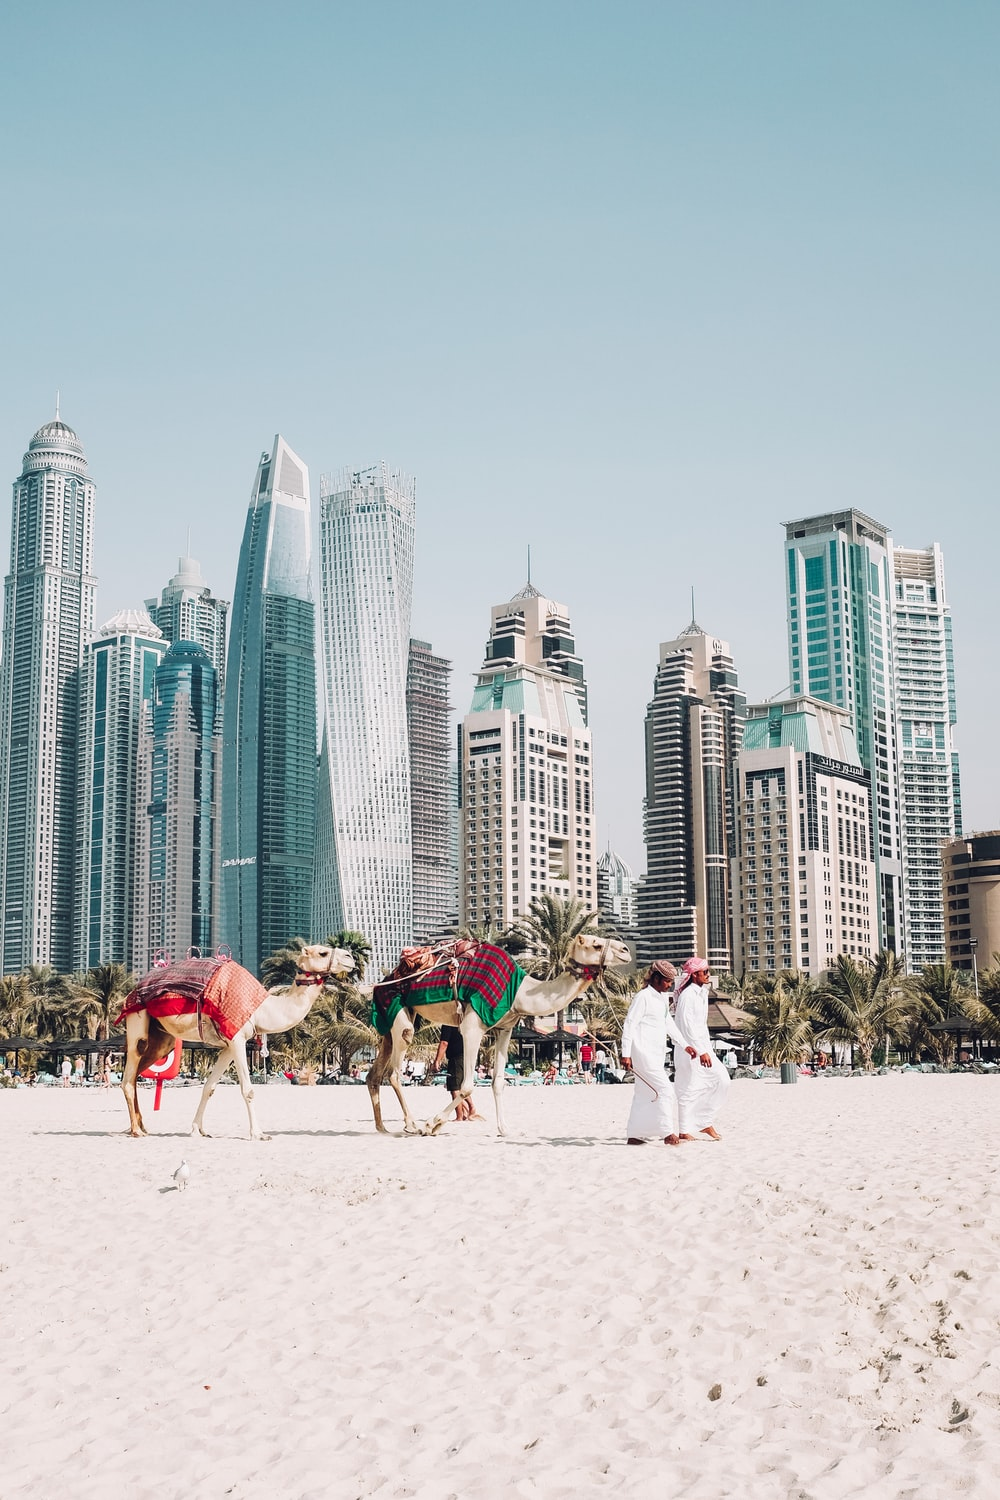 Best Dubai Pictures [HD] | Download Free Images on Unsplash